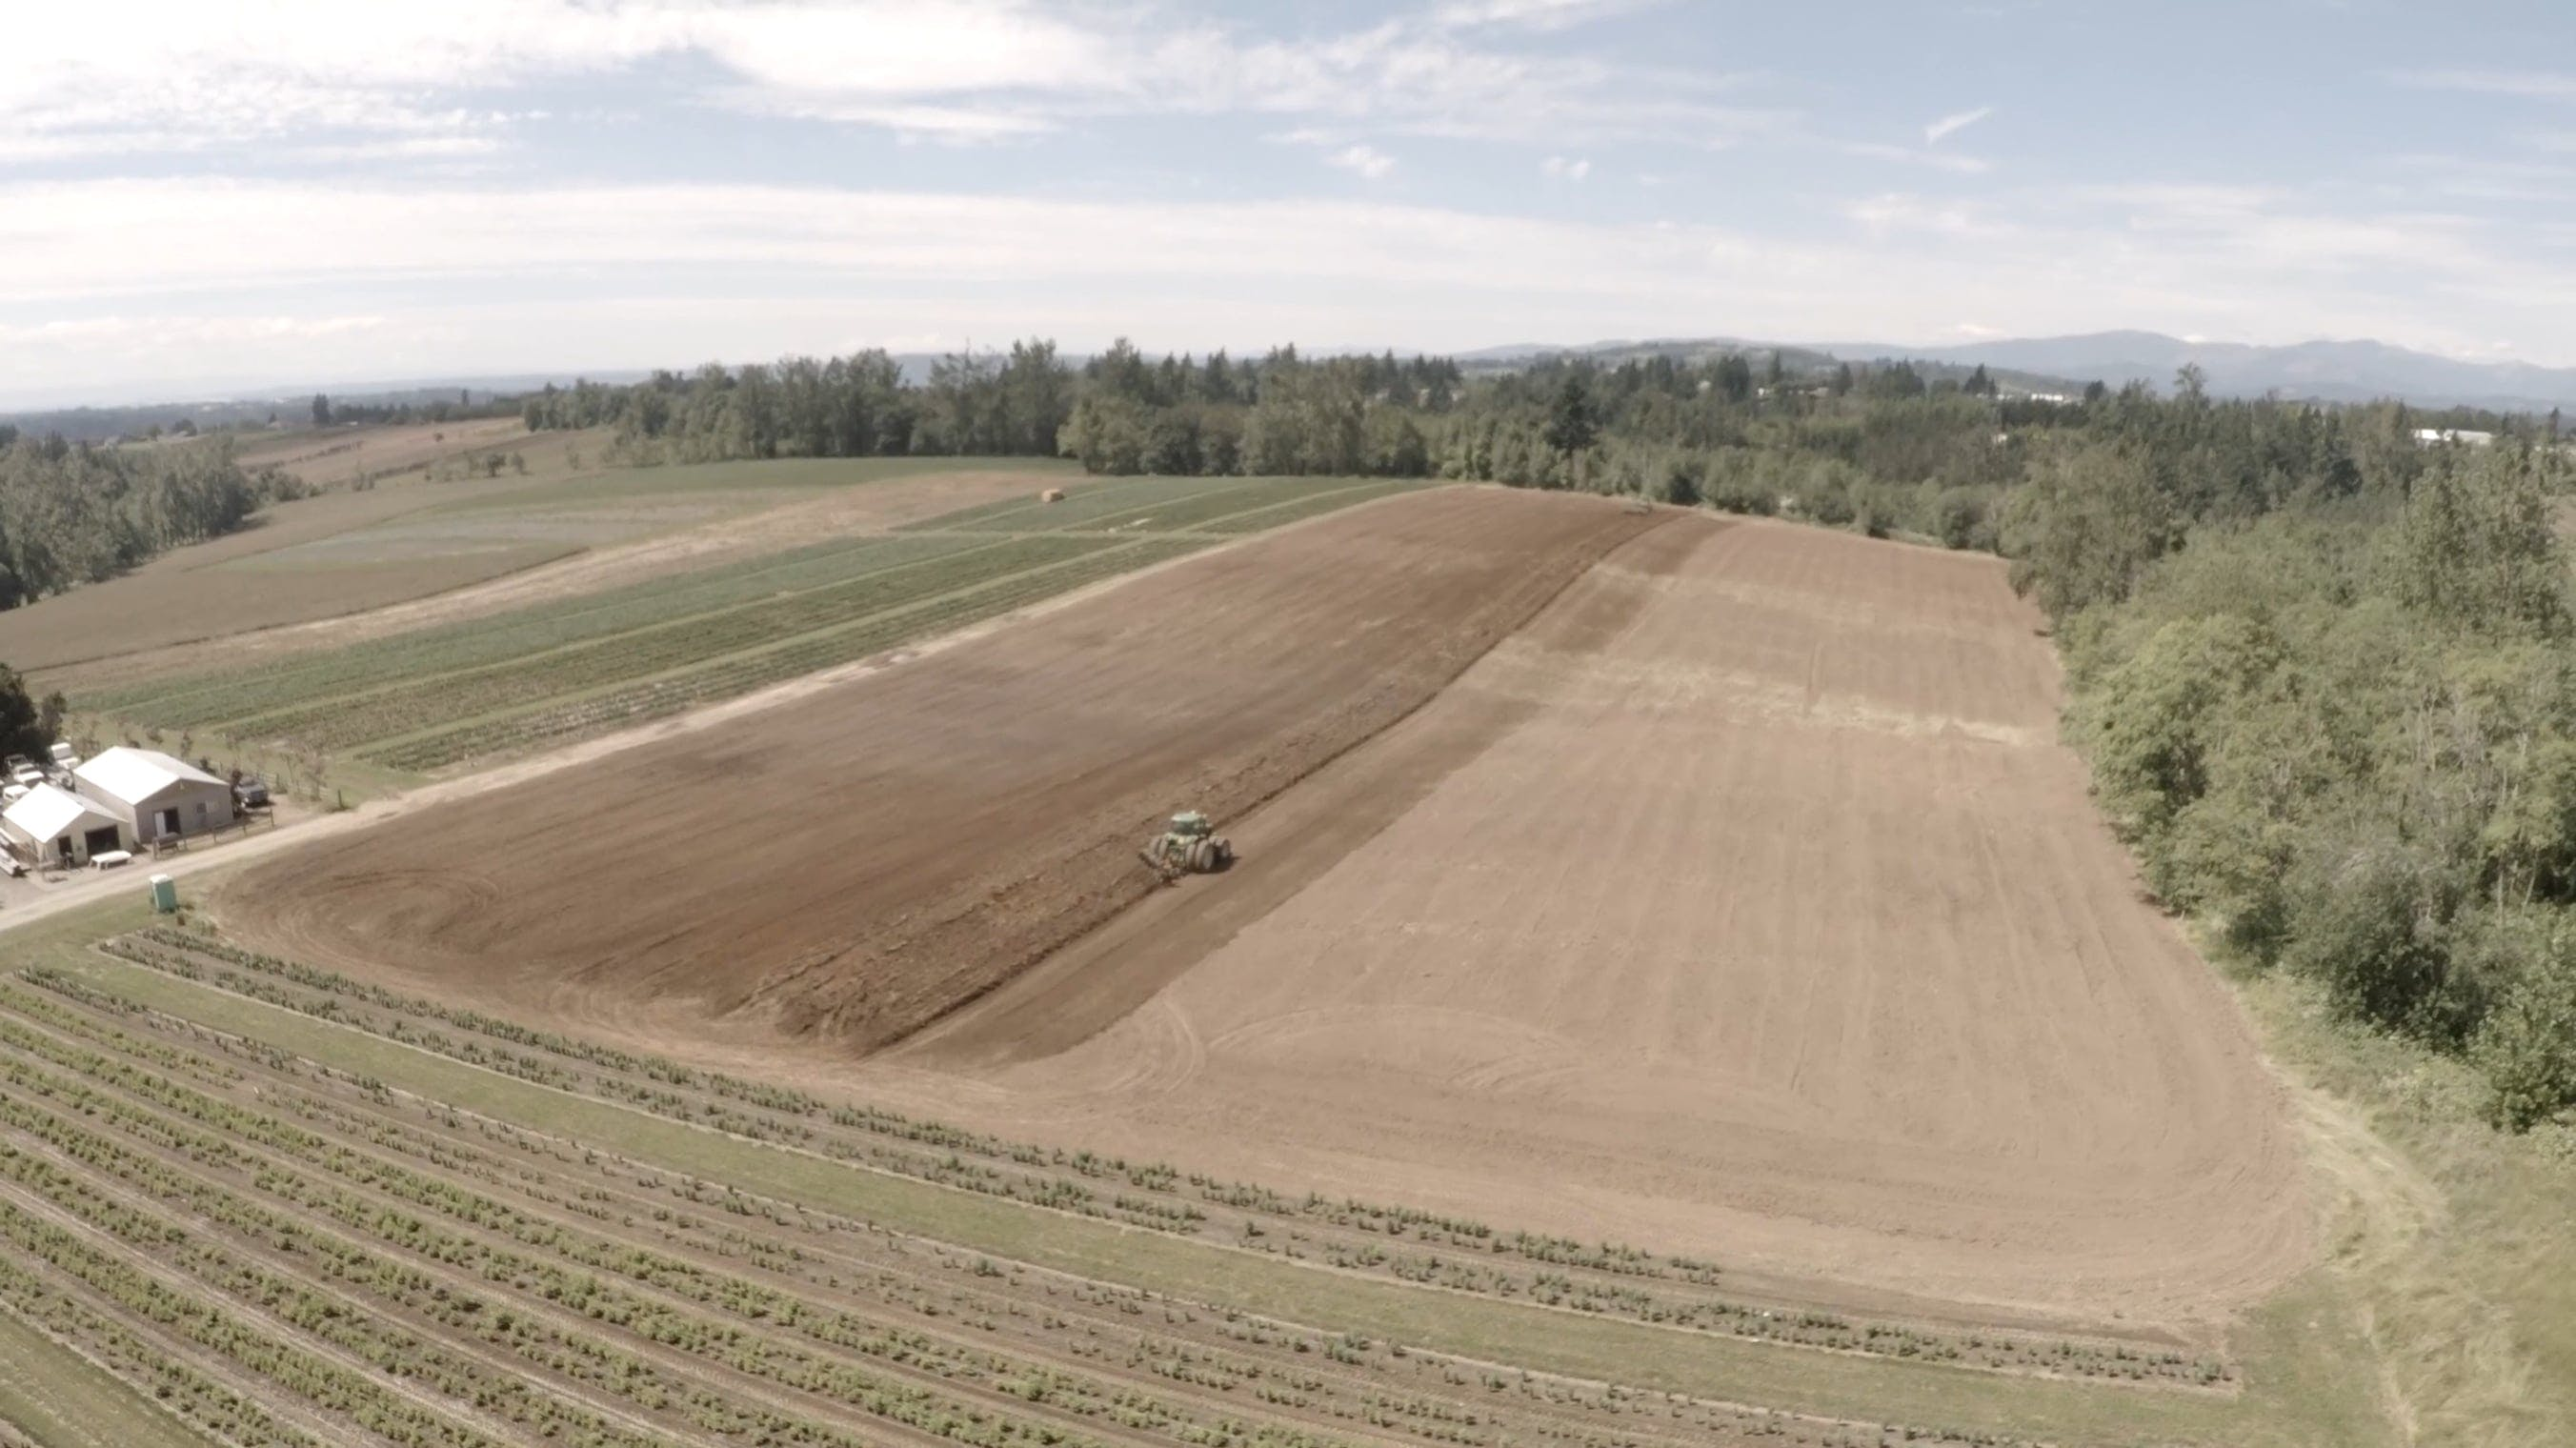 Drone Shot Of Farm